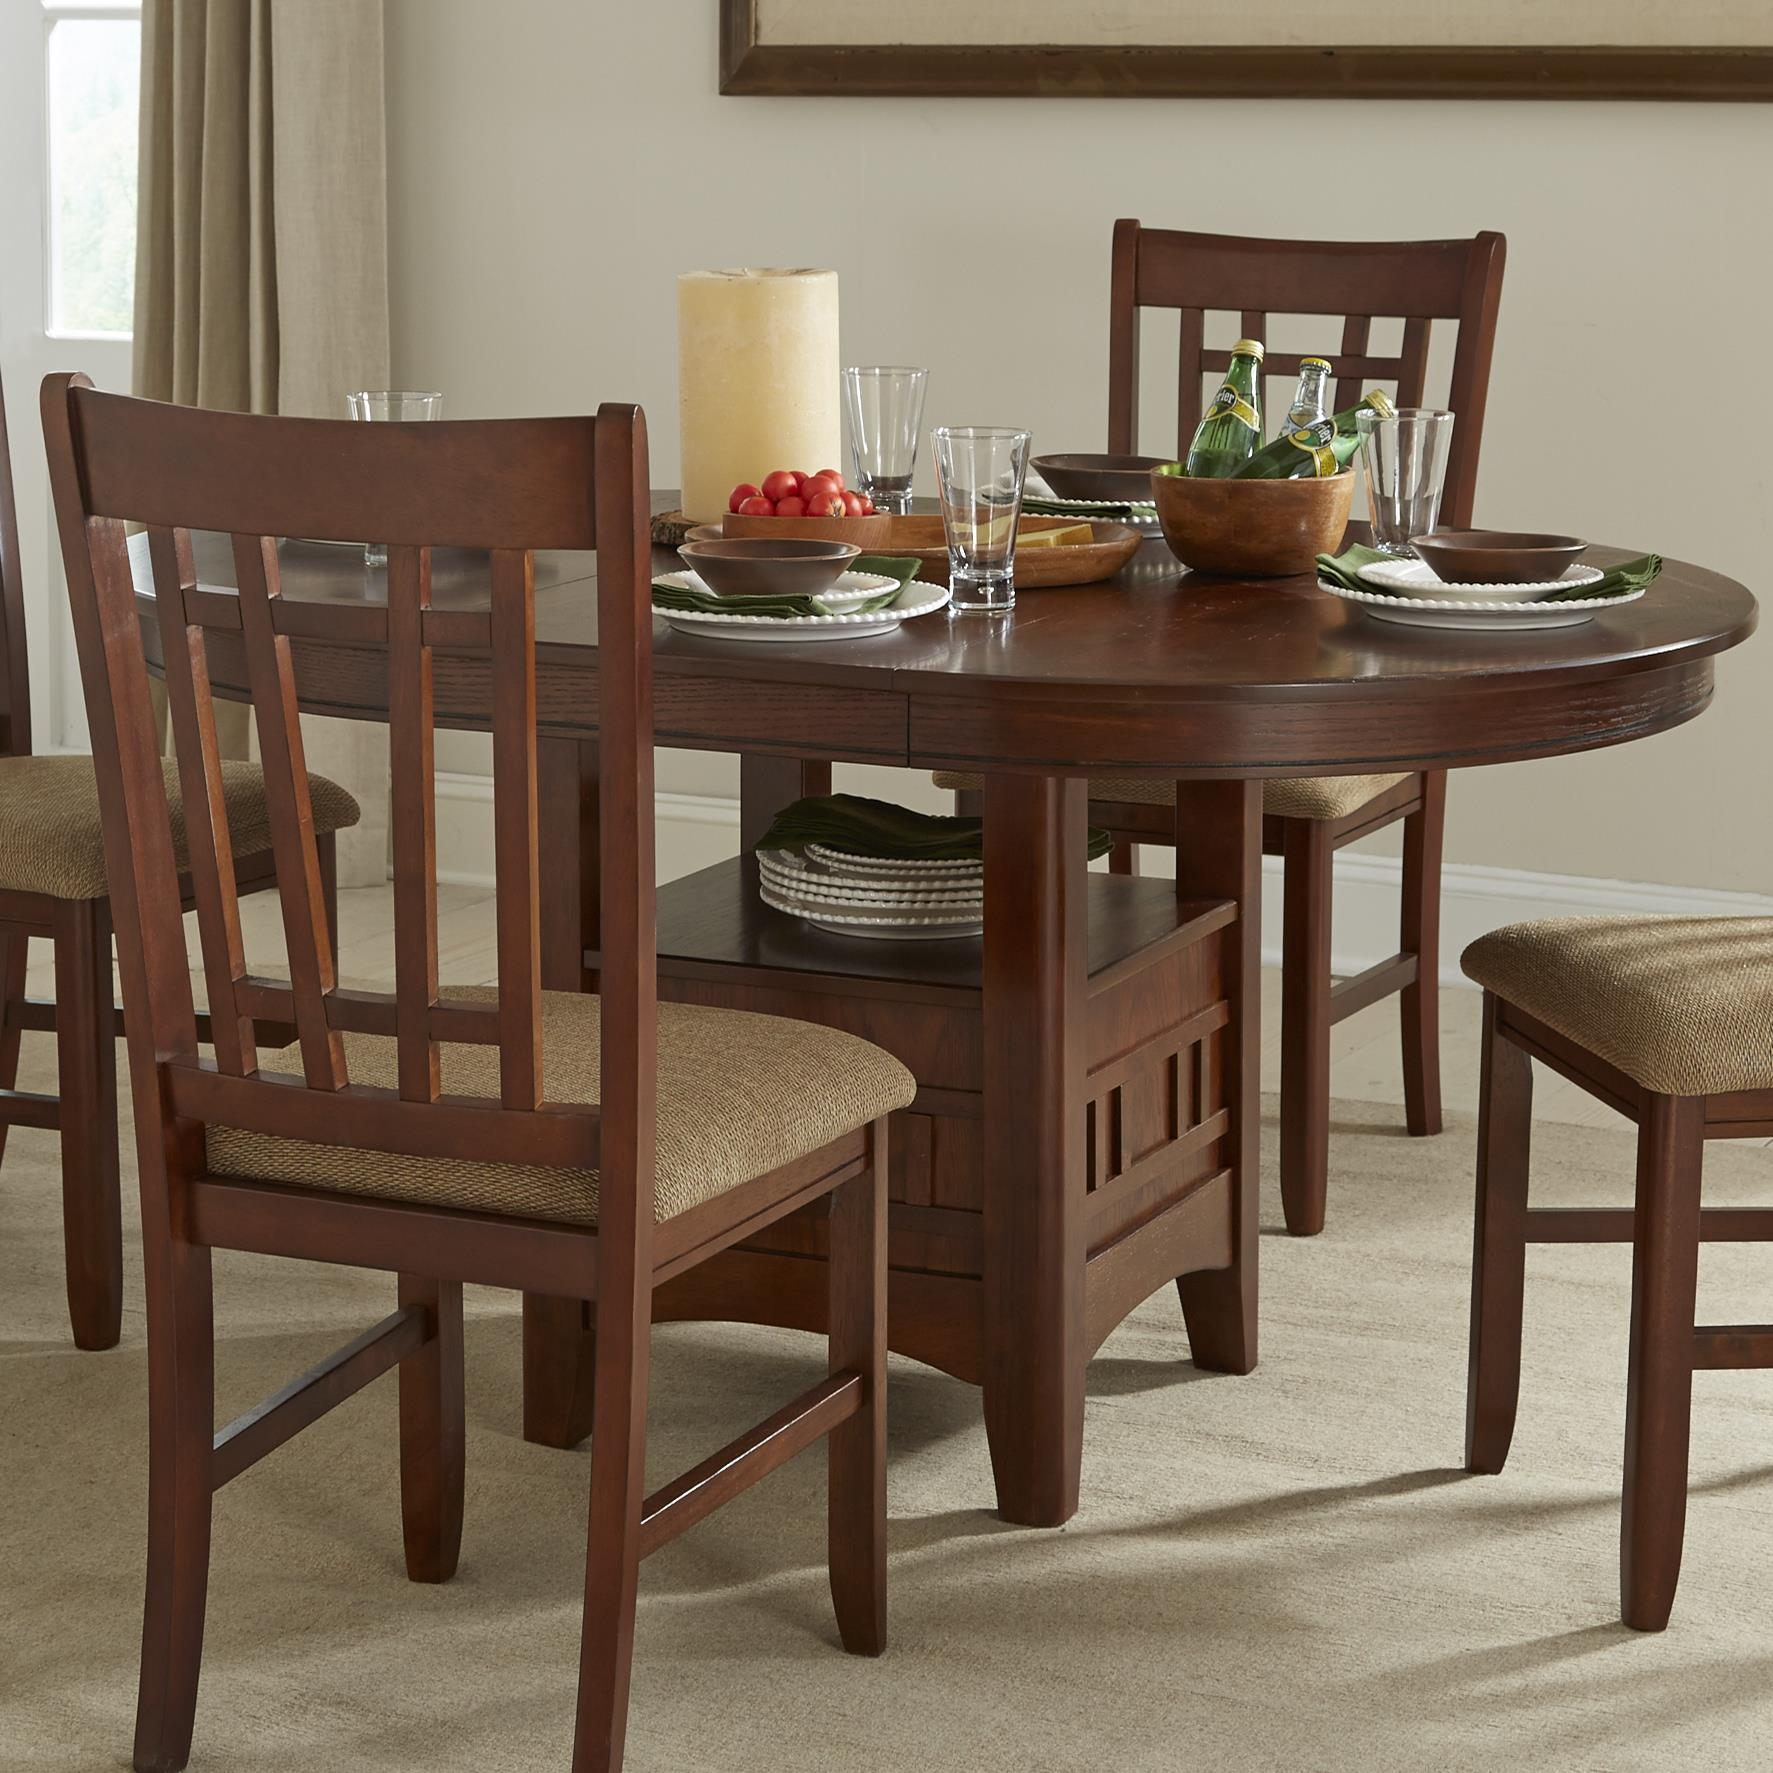 Oval dining table with storage pedestal by intercon wolf for Dining table base ideas